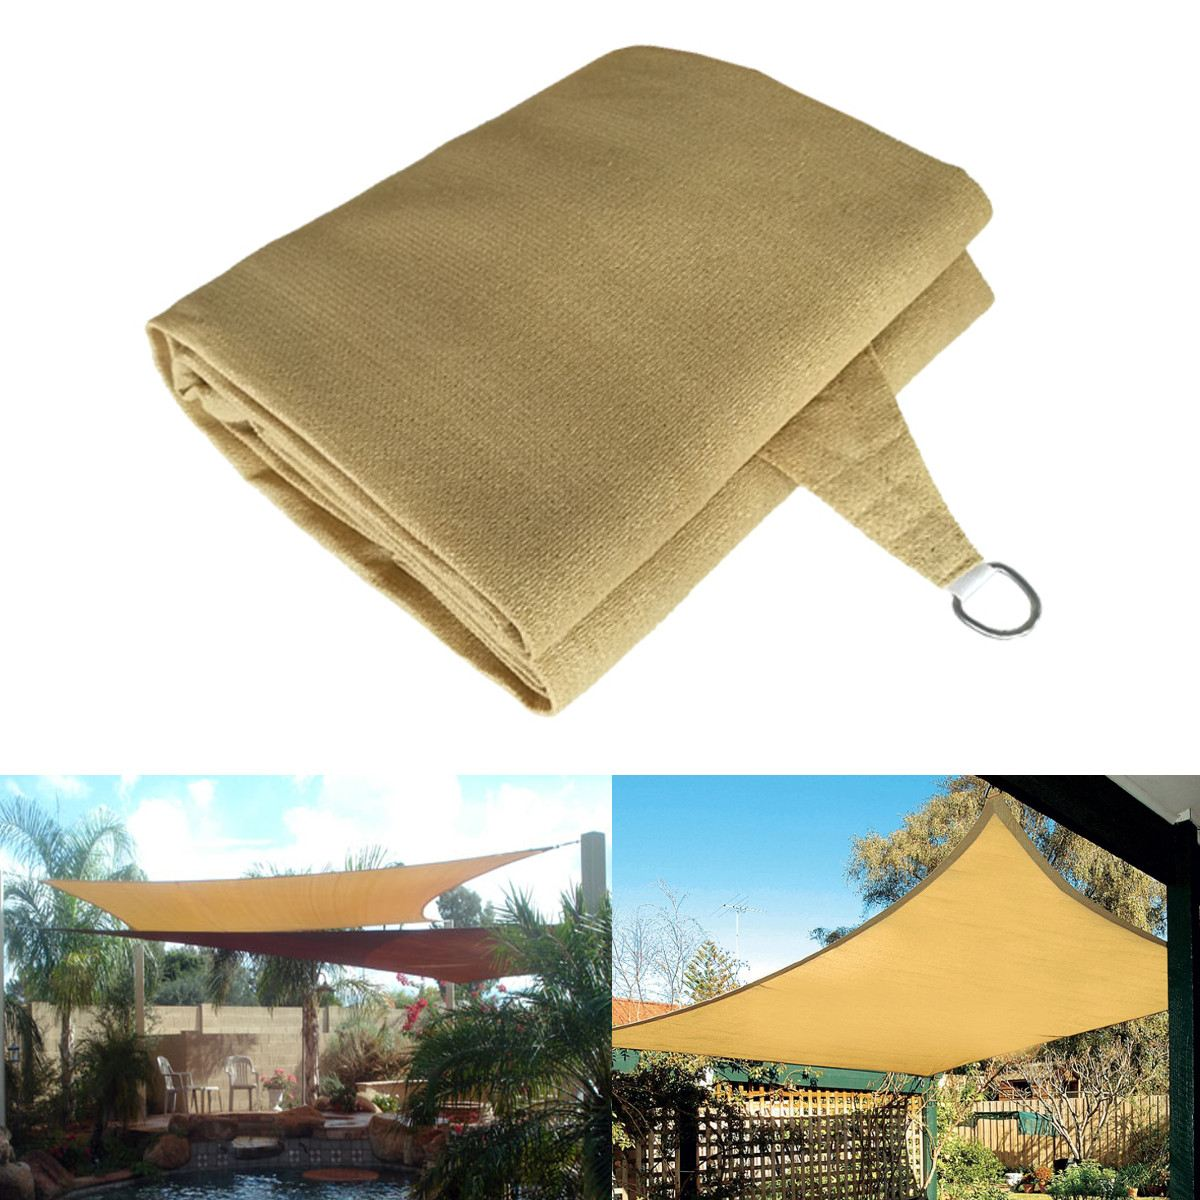 Outdoor 6X4m UV Protection Polyester Sun Shade Sail Garden Top Canopy Cover Patio Pool Waterproof Rectangle new Awning zhuoao outdoor 3 4persons pergola canopy tent awning large outdoor rain uv shade with rain cover include one set front pole